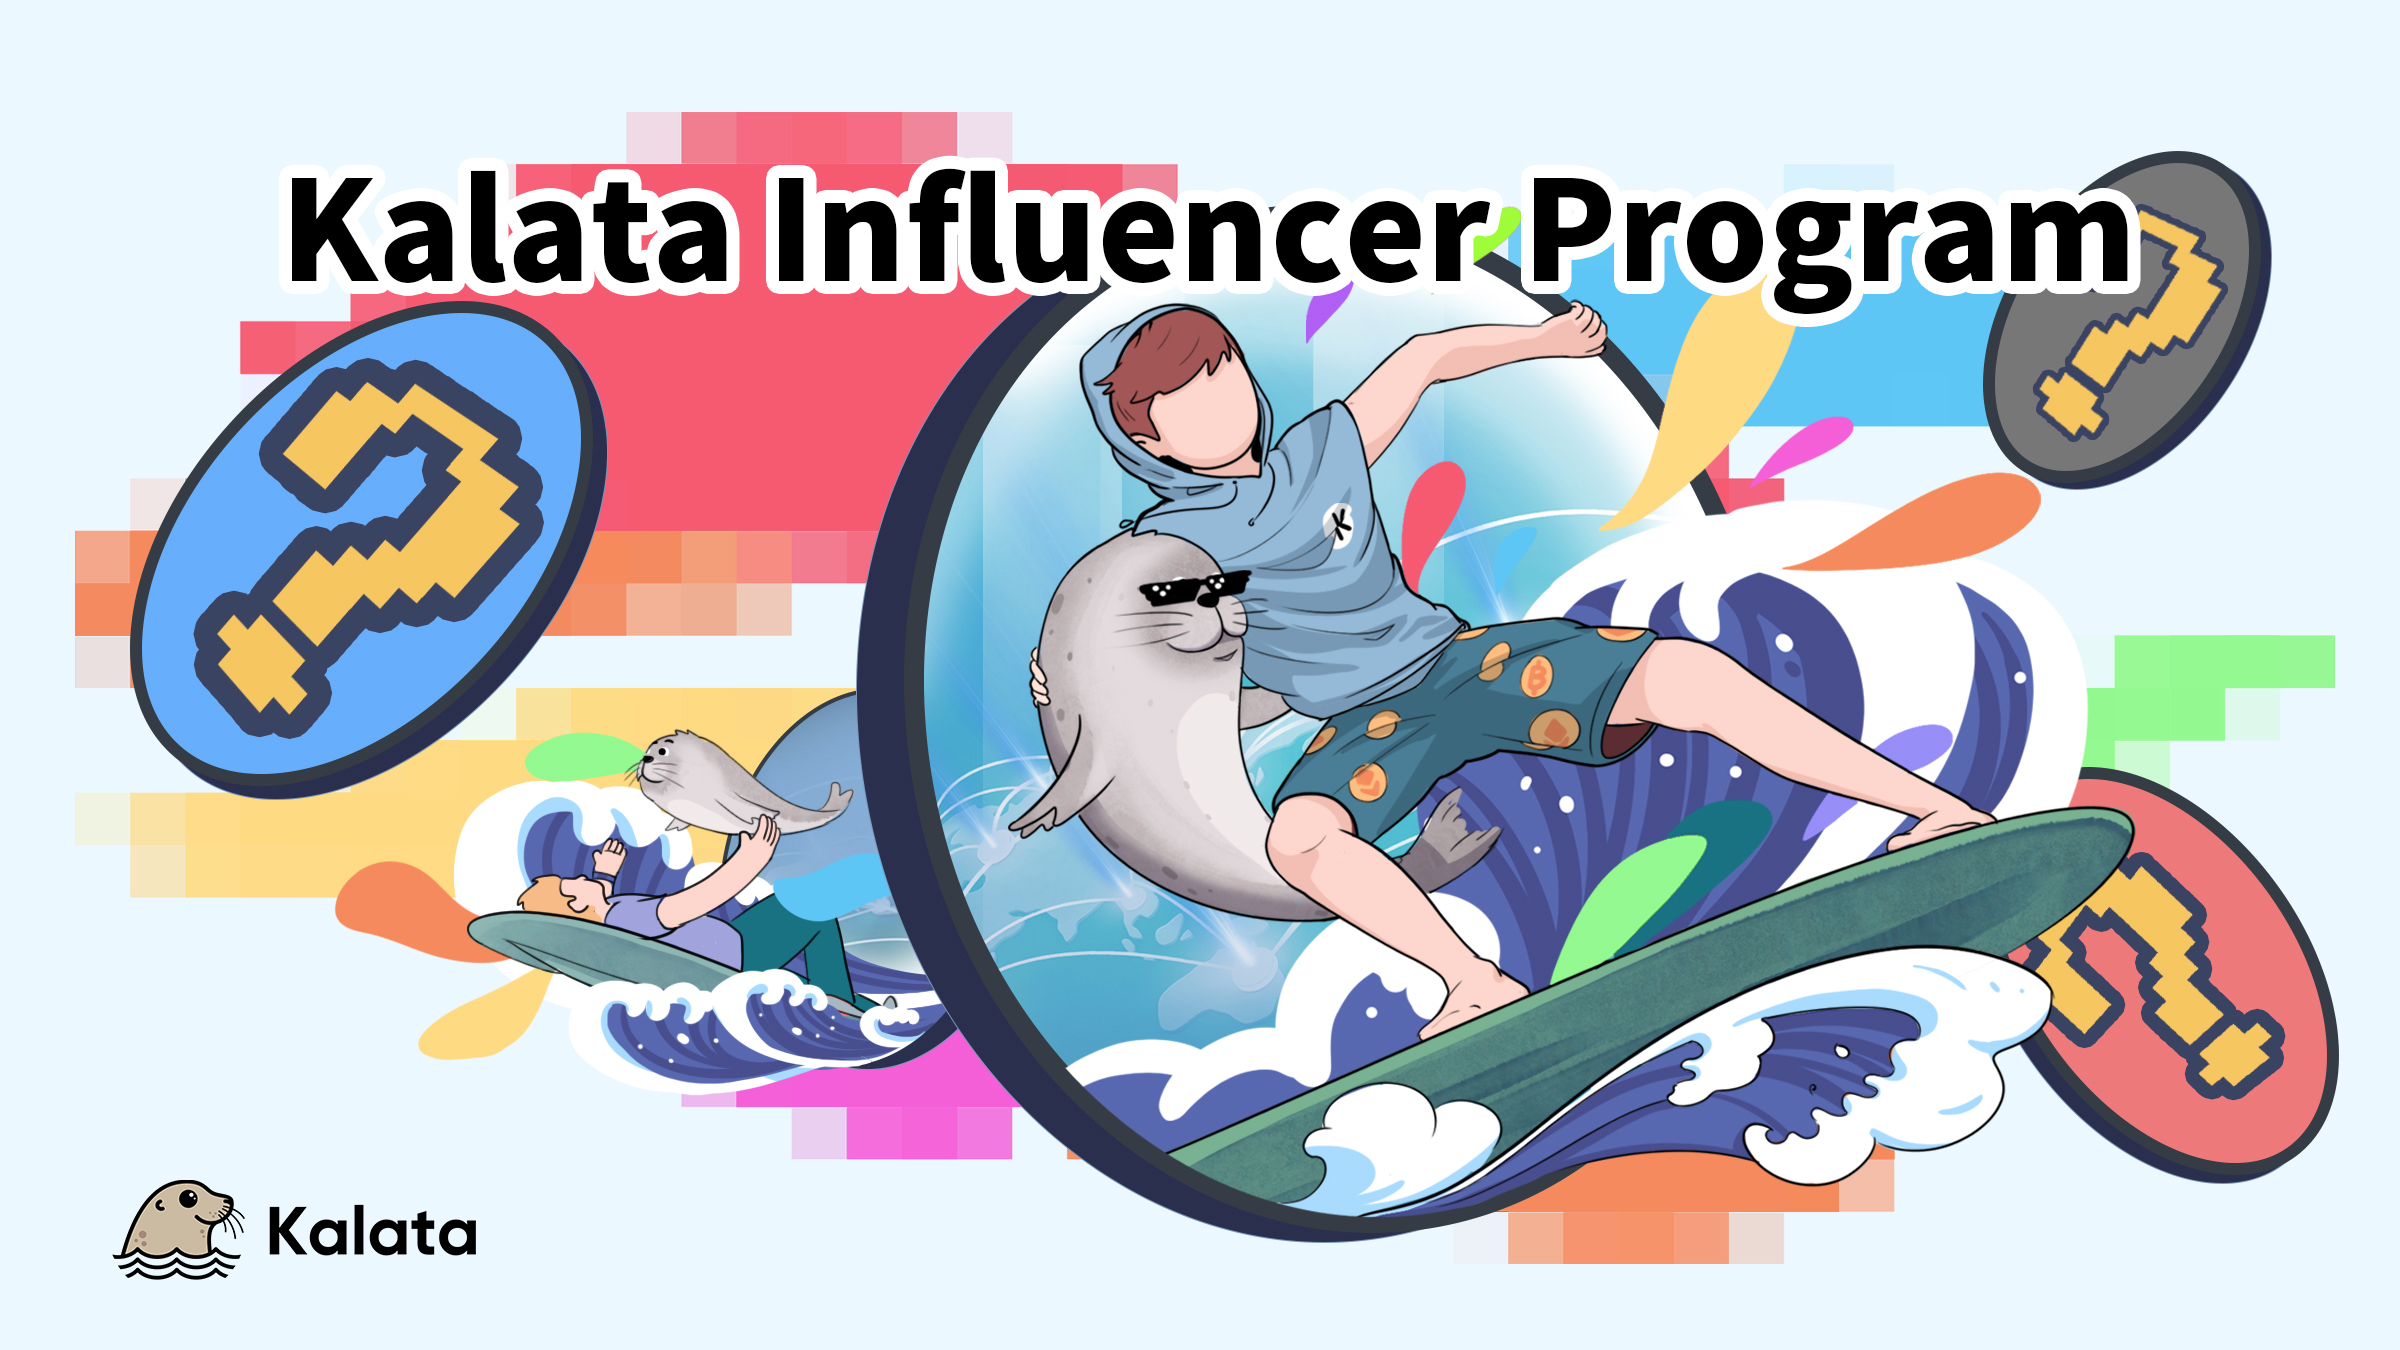 Join the Kalata Influencer Program and Grow with this Promising Project